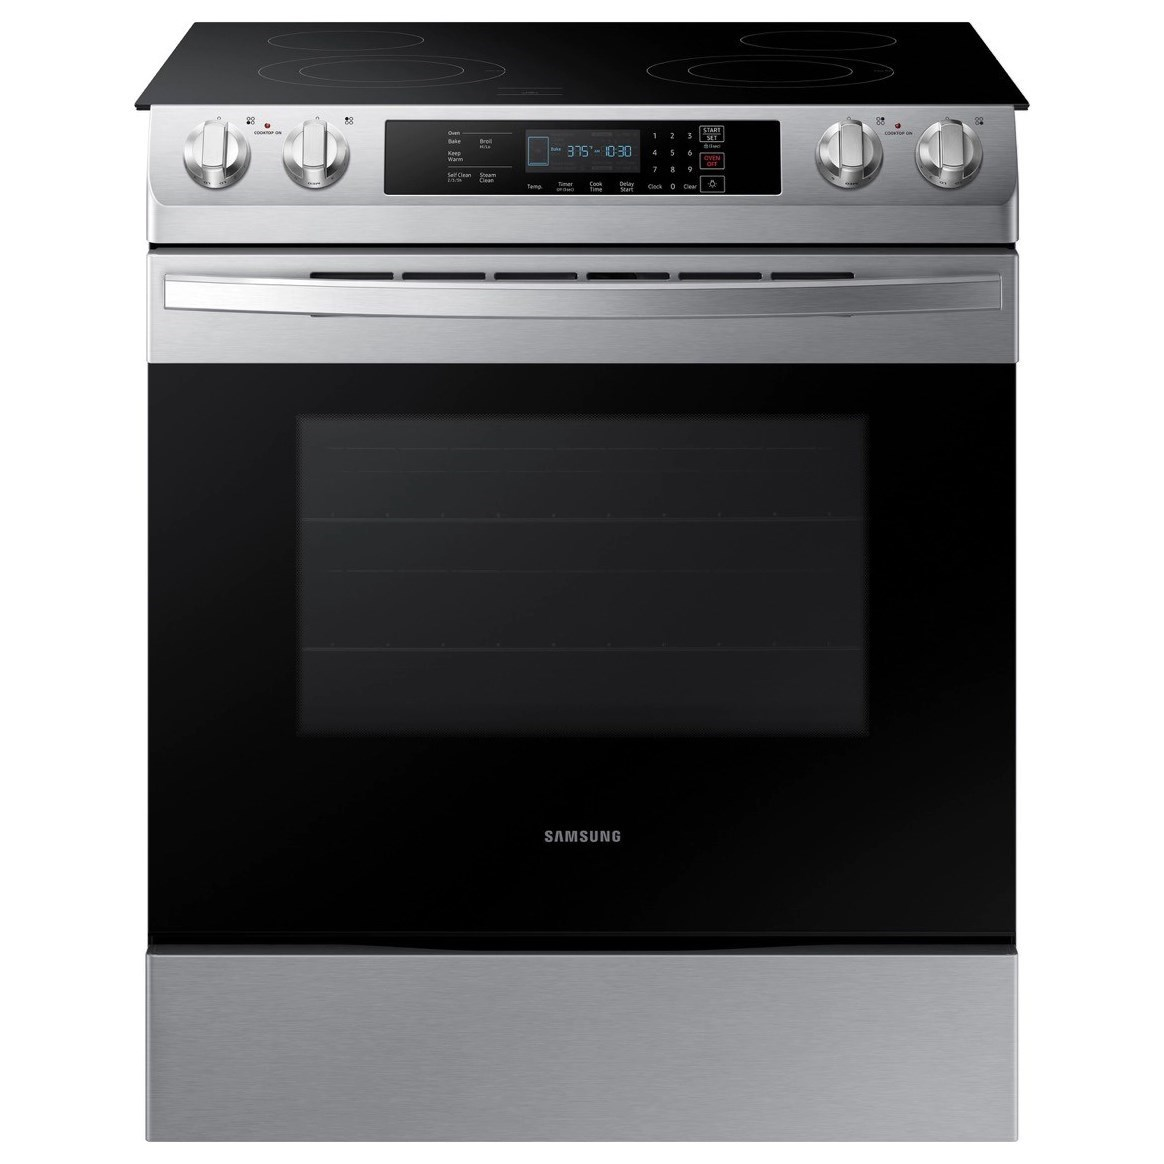 Electric Range 5.8 cu. ft. Slide-In Electric Range by Samsung Appliances at Furniture and ApplianceMart